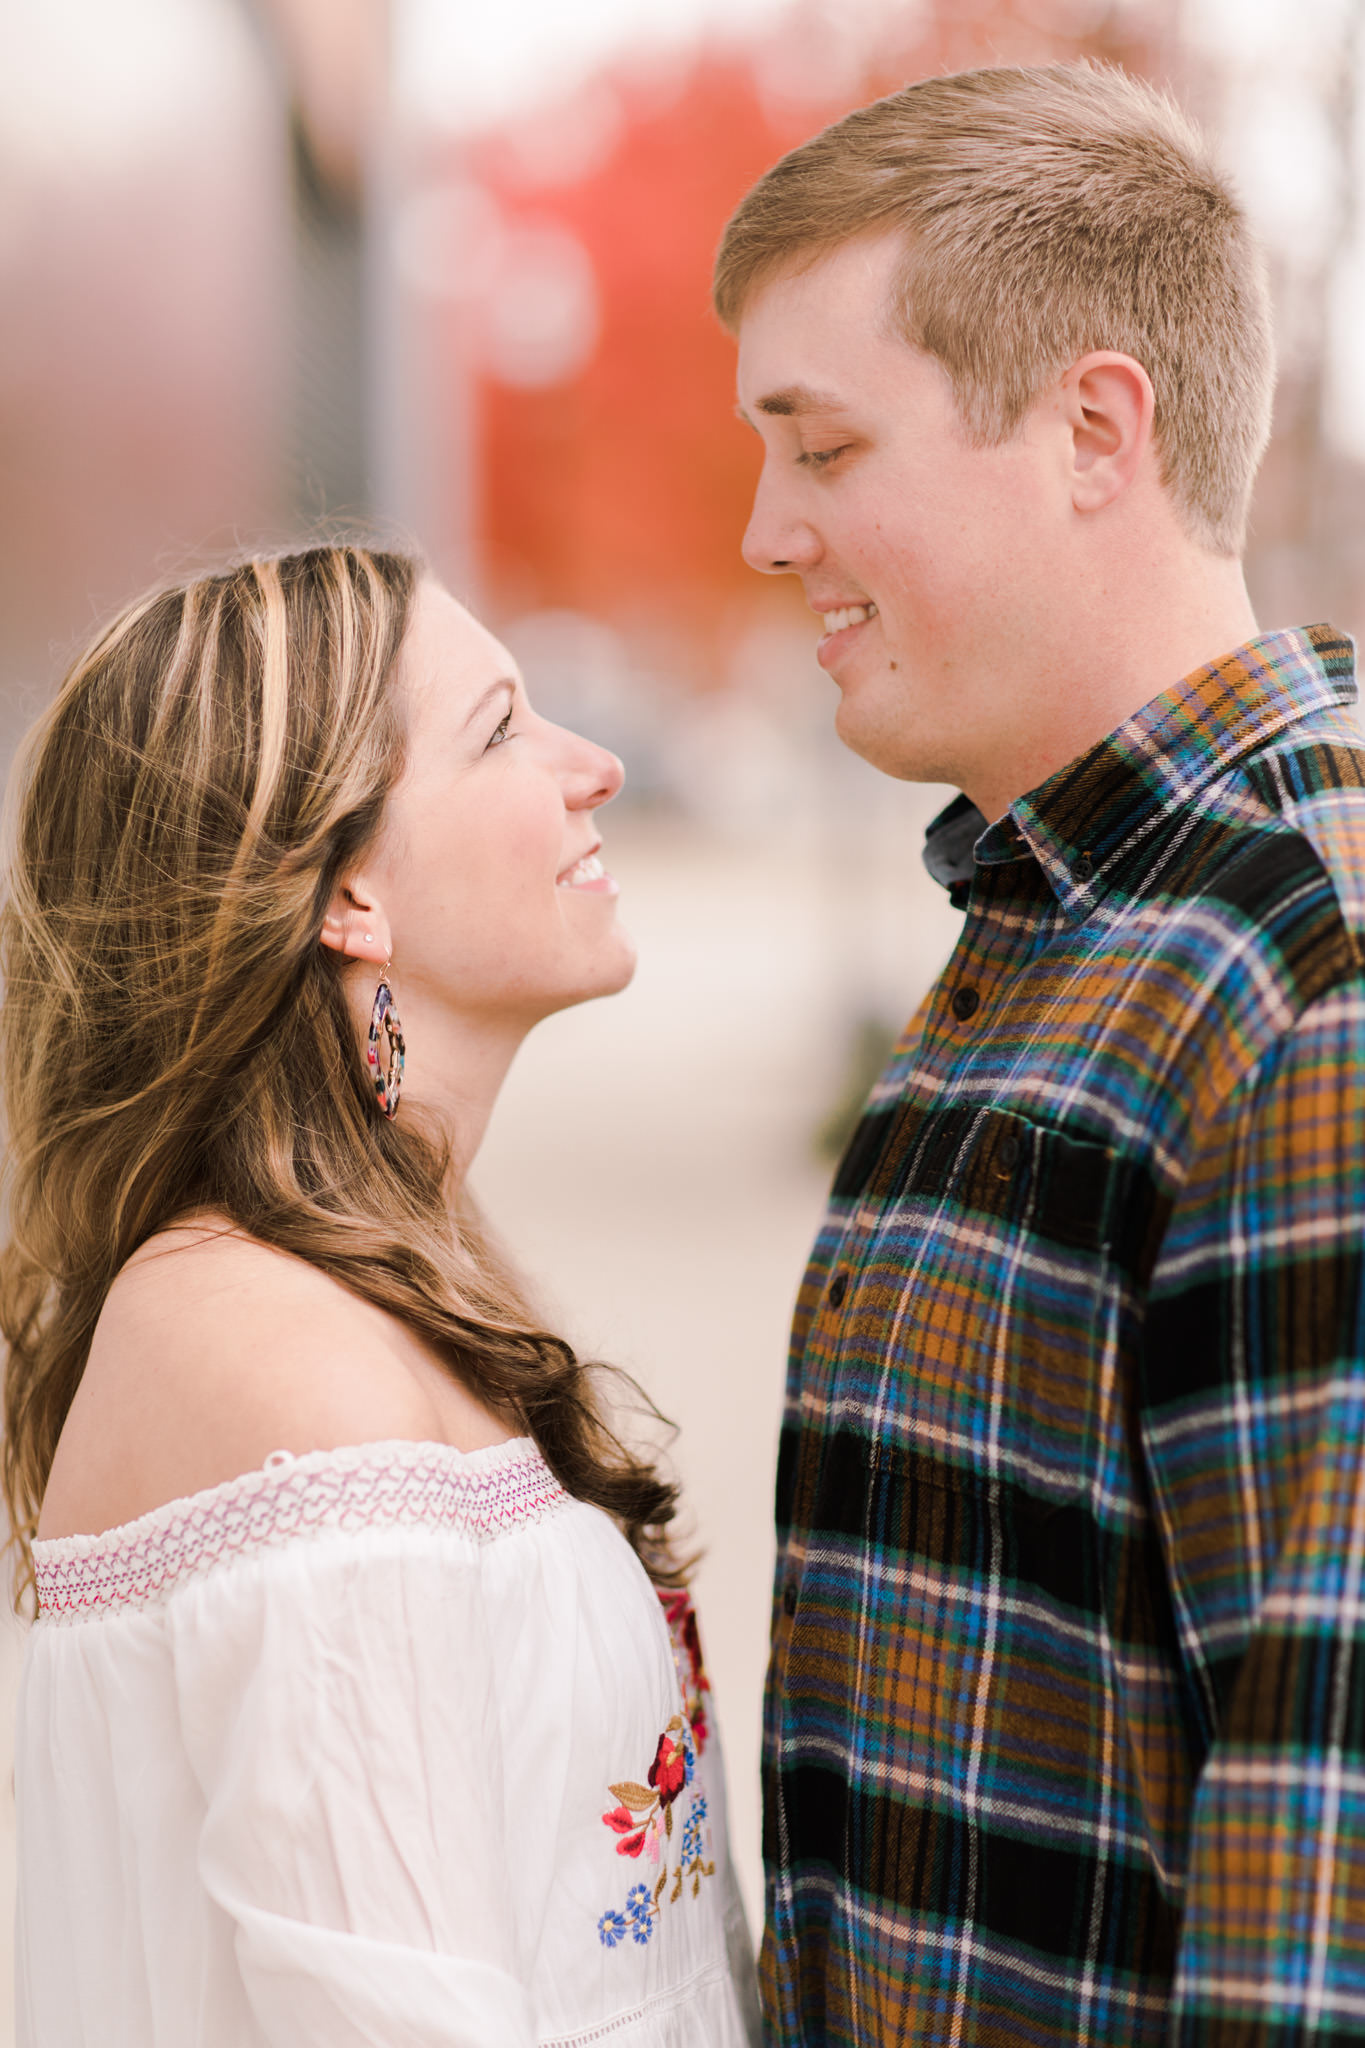 Cody & Maddie The Omni Engagement Session (Web Use Only) (78 of 83).jpg